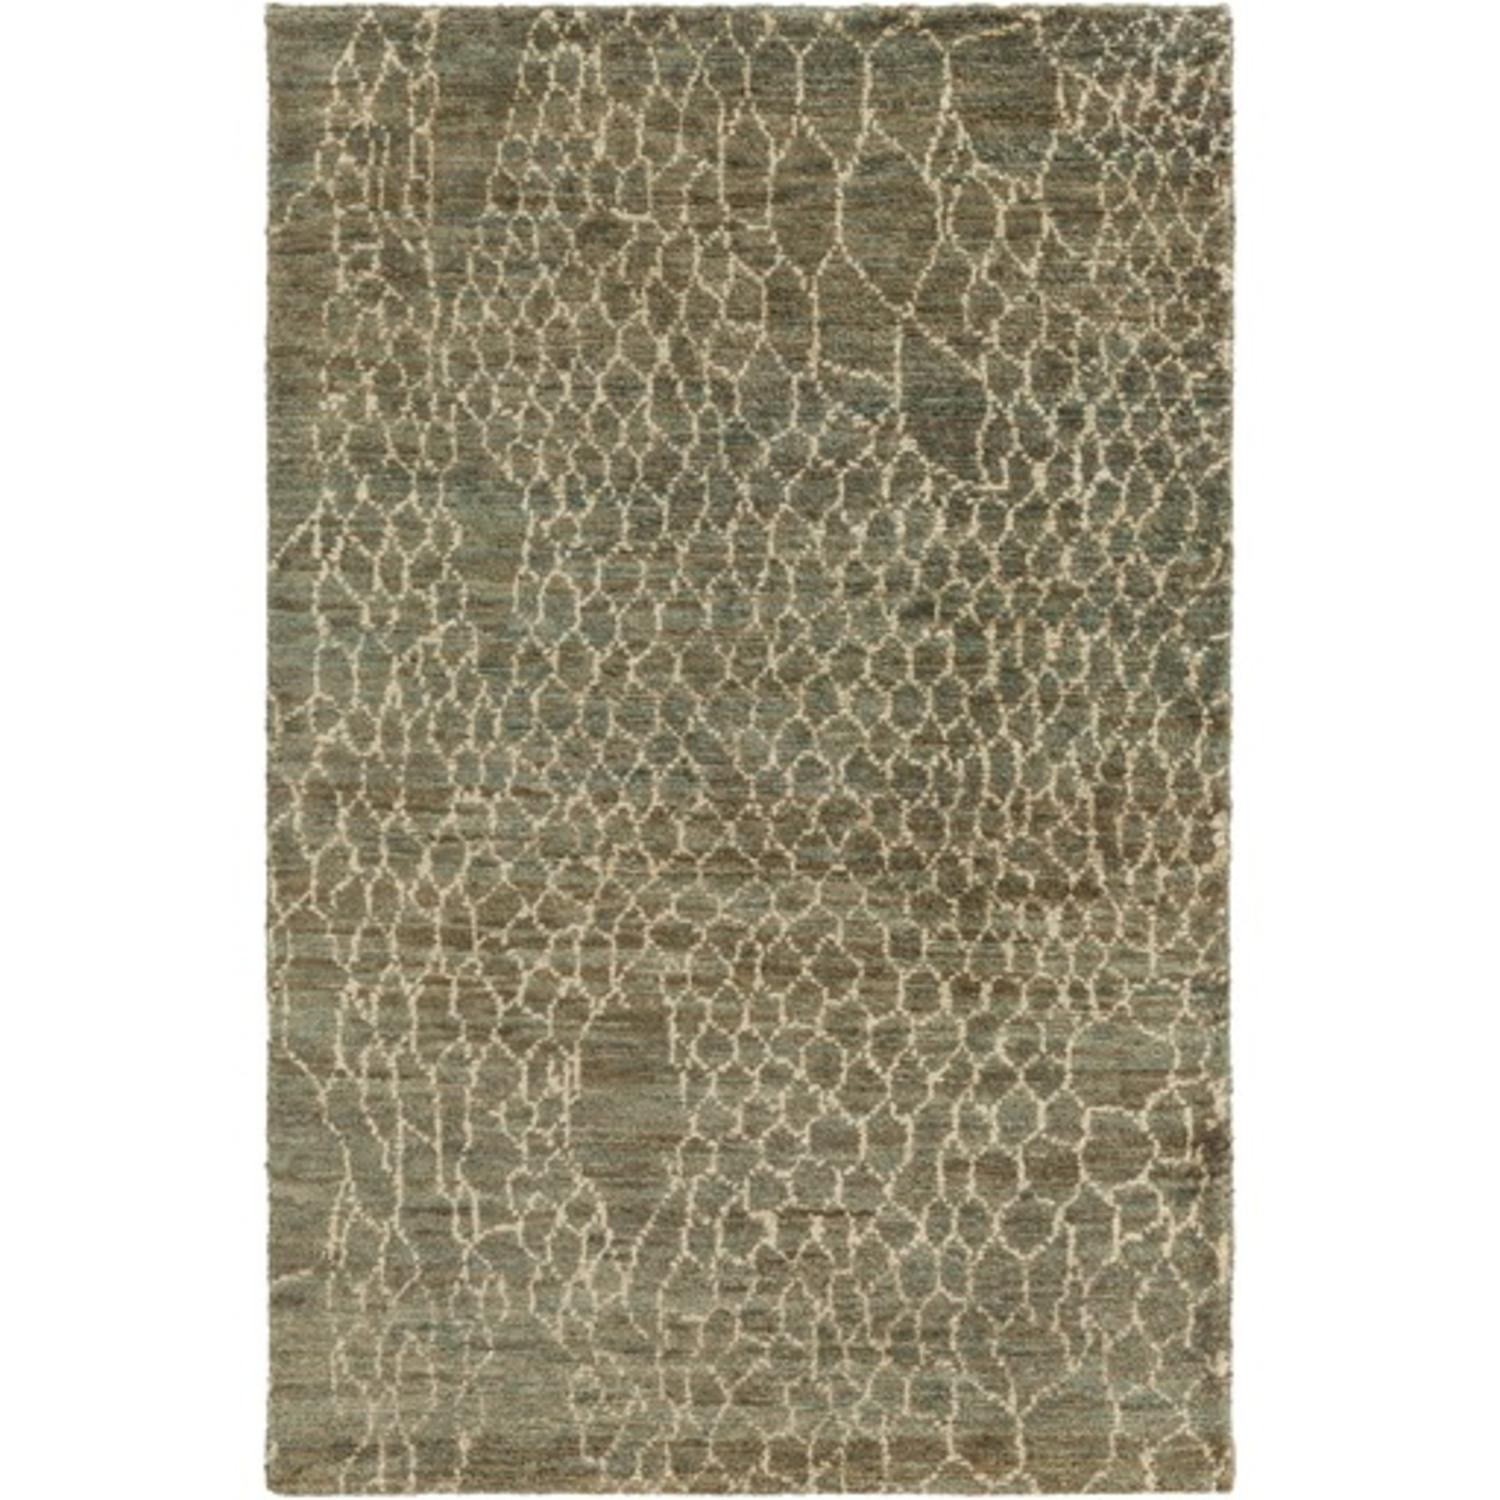 8' x 11' Torn Mesh Olive Green and Ivory White Hand Knotted Area Throw Rug